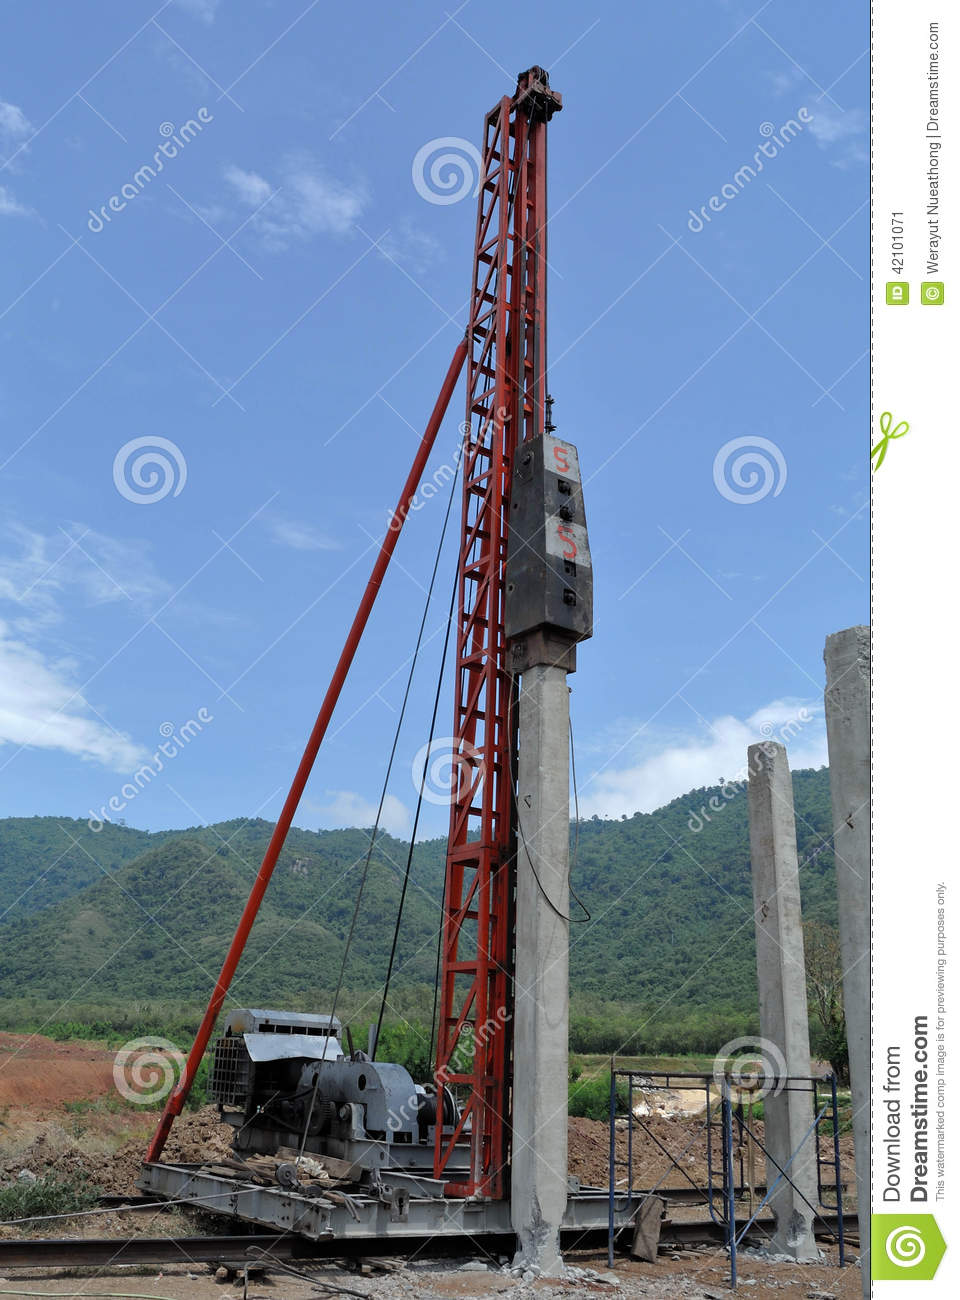 Mechanical construction stock image  Image of construction